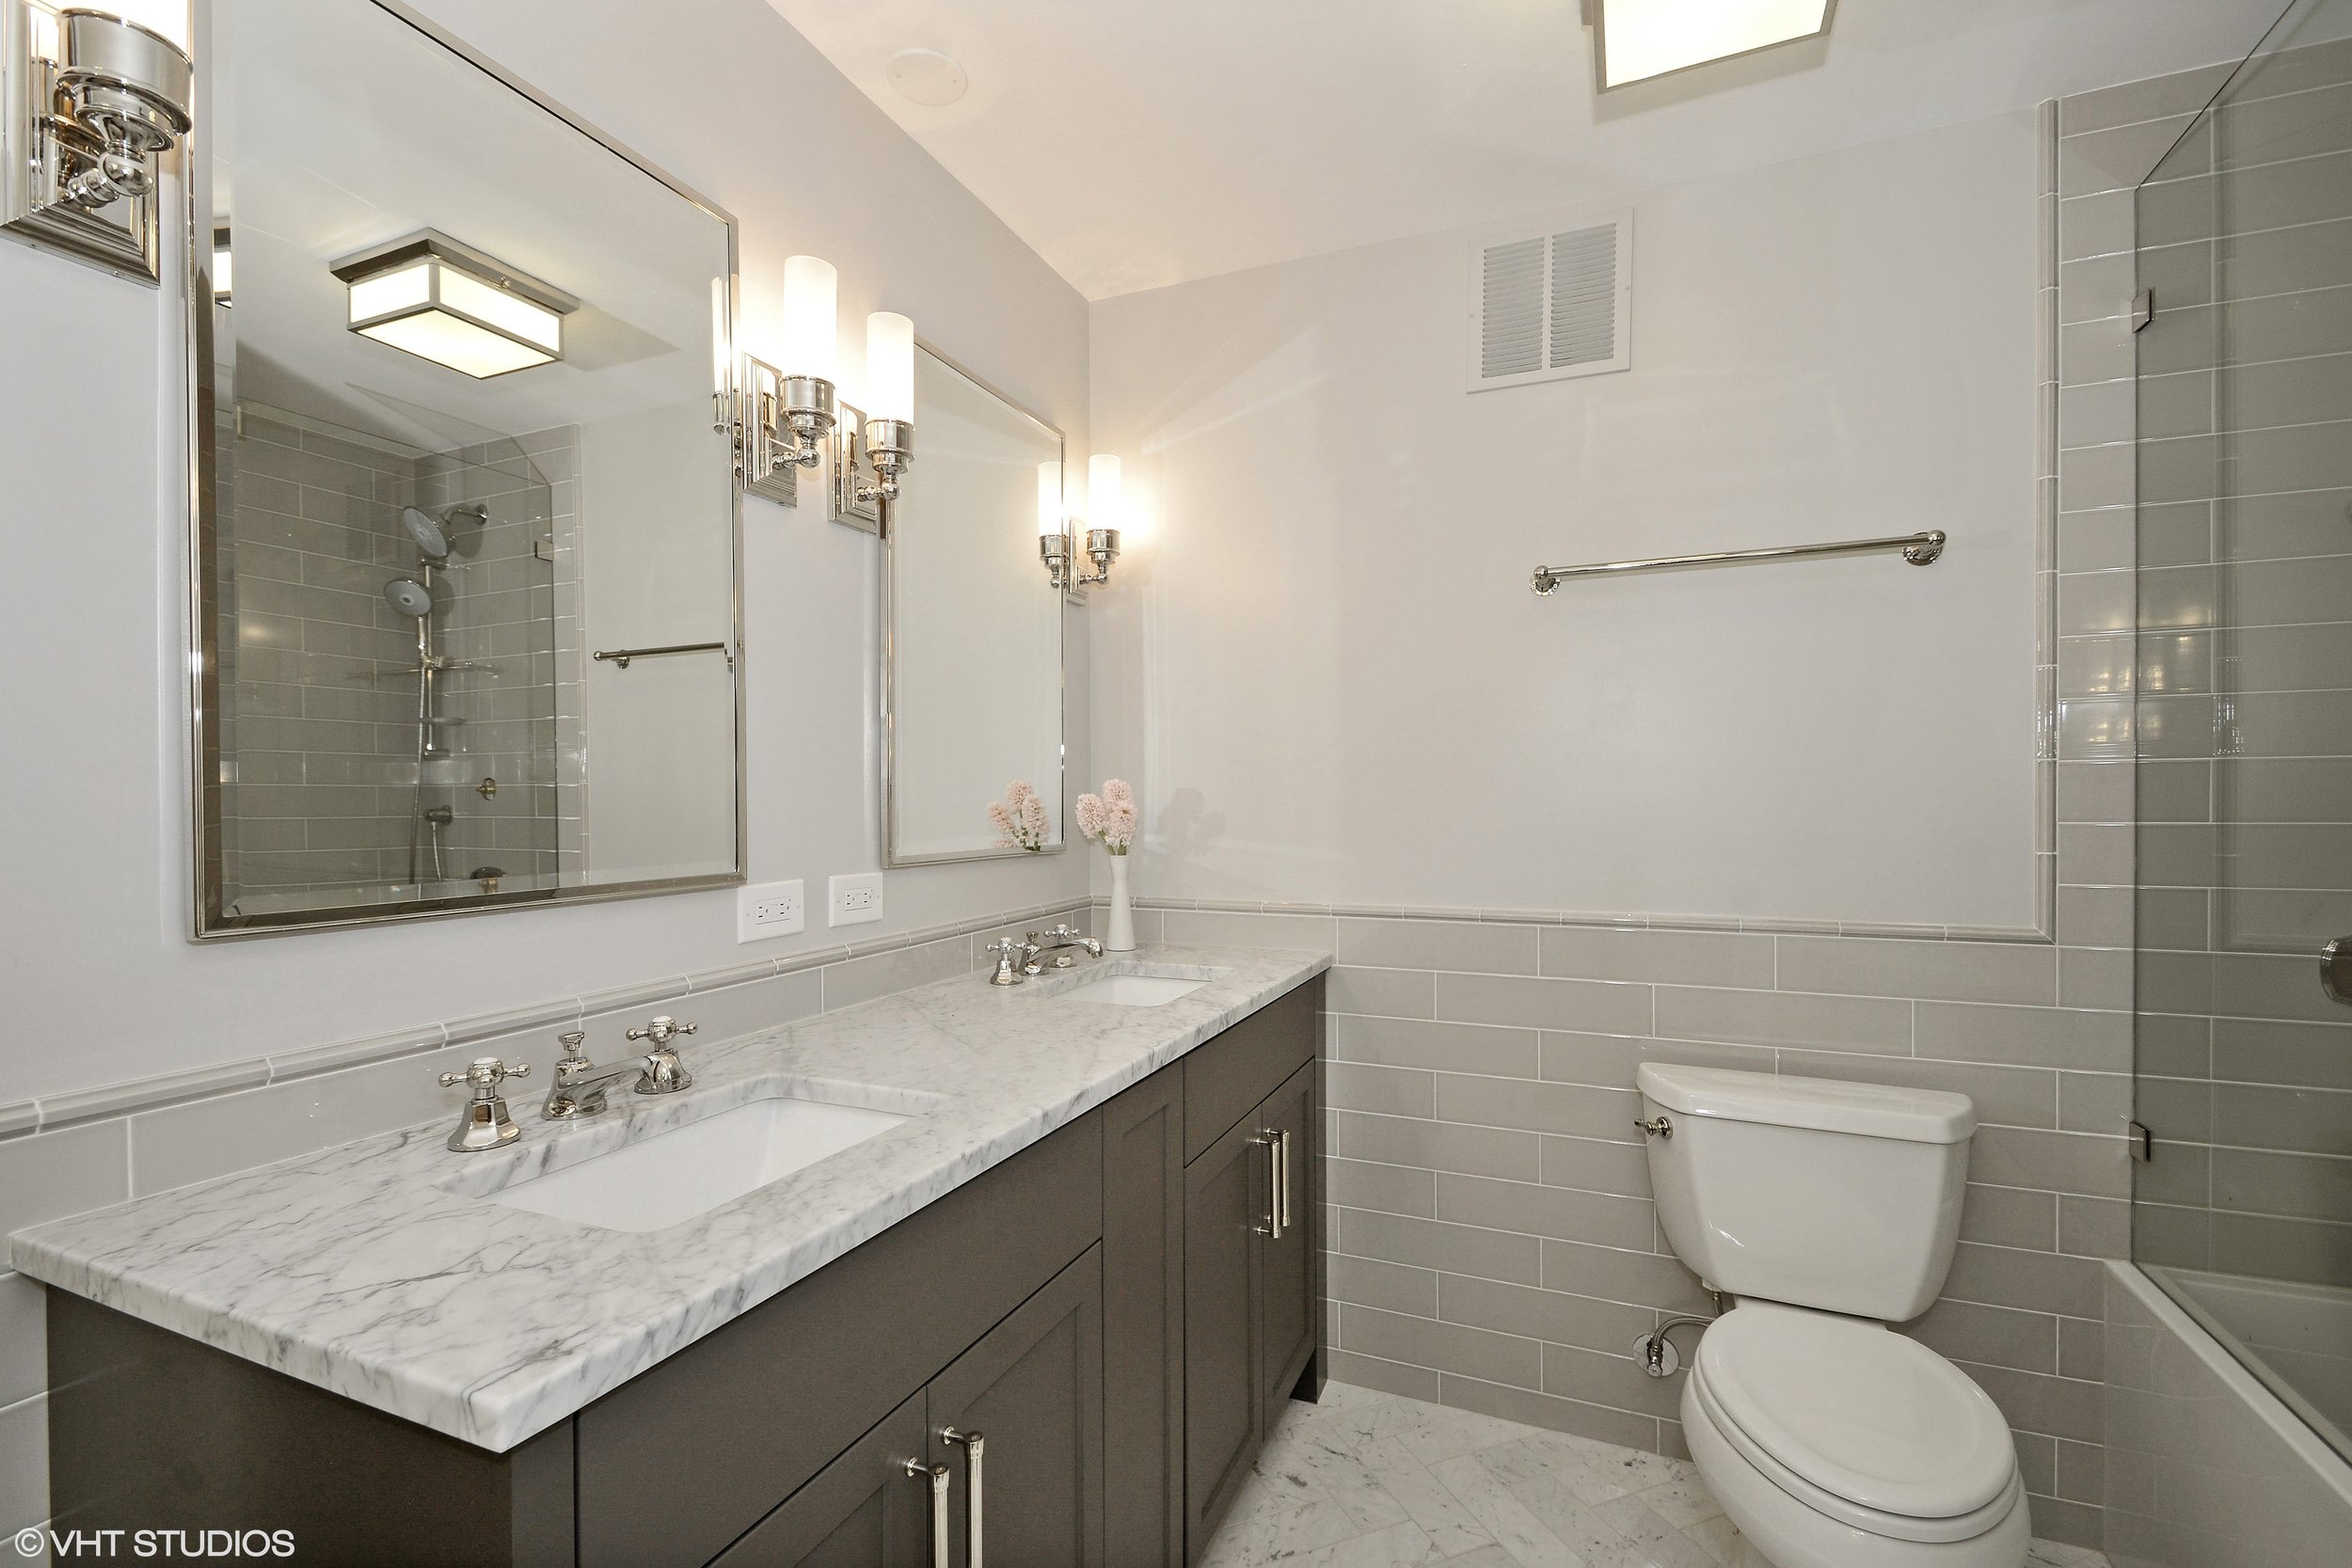 10_155HarborDr_Unit2403_13_MasterBathroom_HiRes.jpg